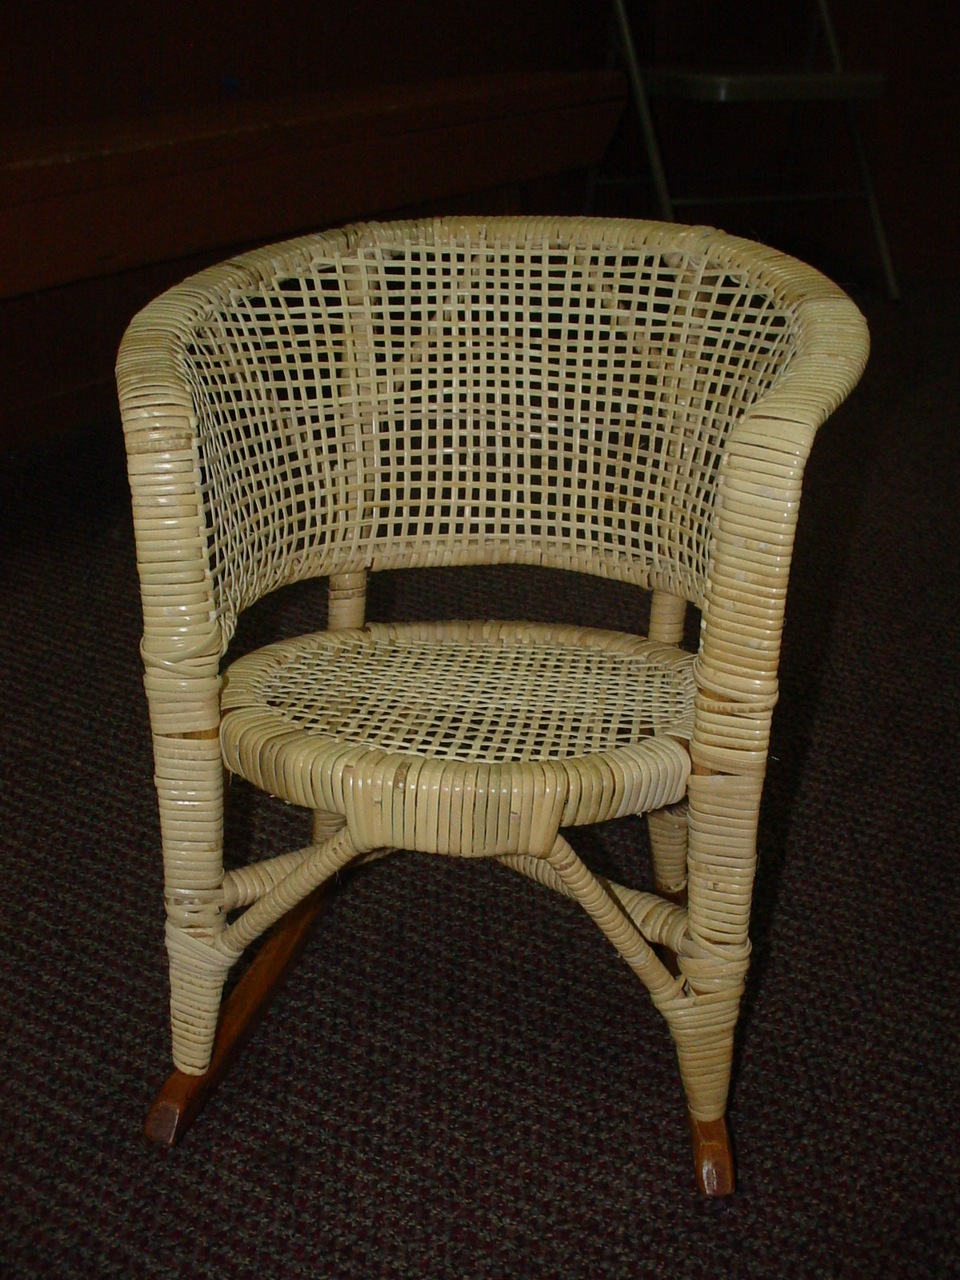 Taleweavers Chair Caning And Wicker Repair Erie Pa